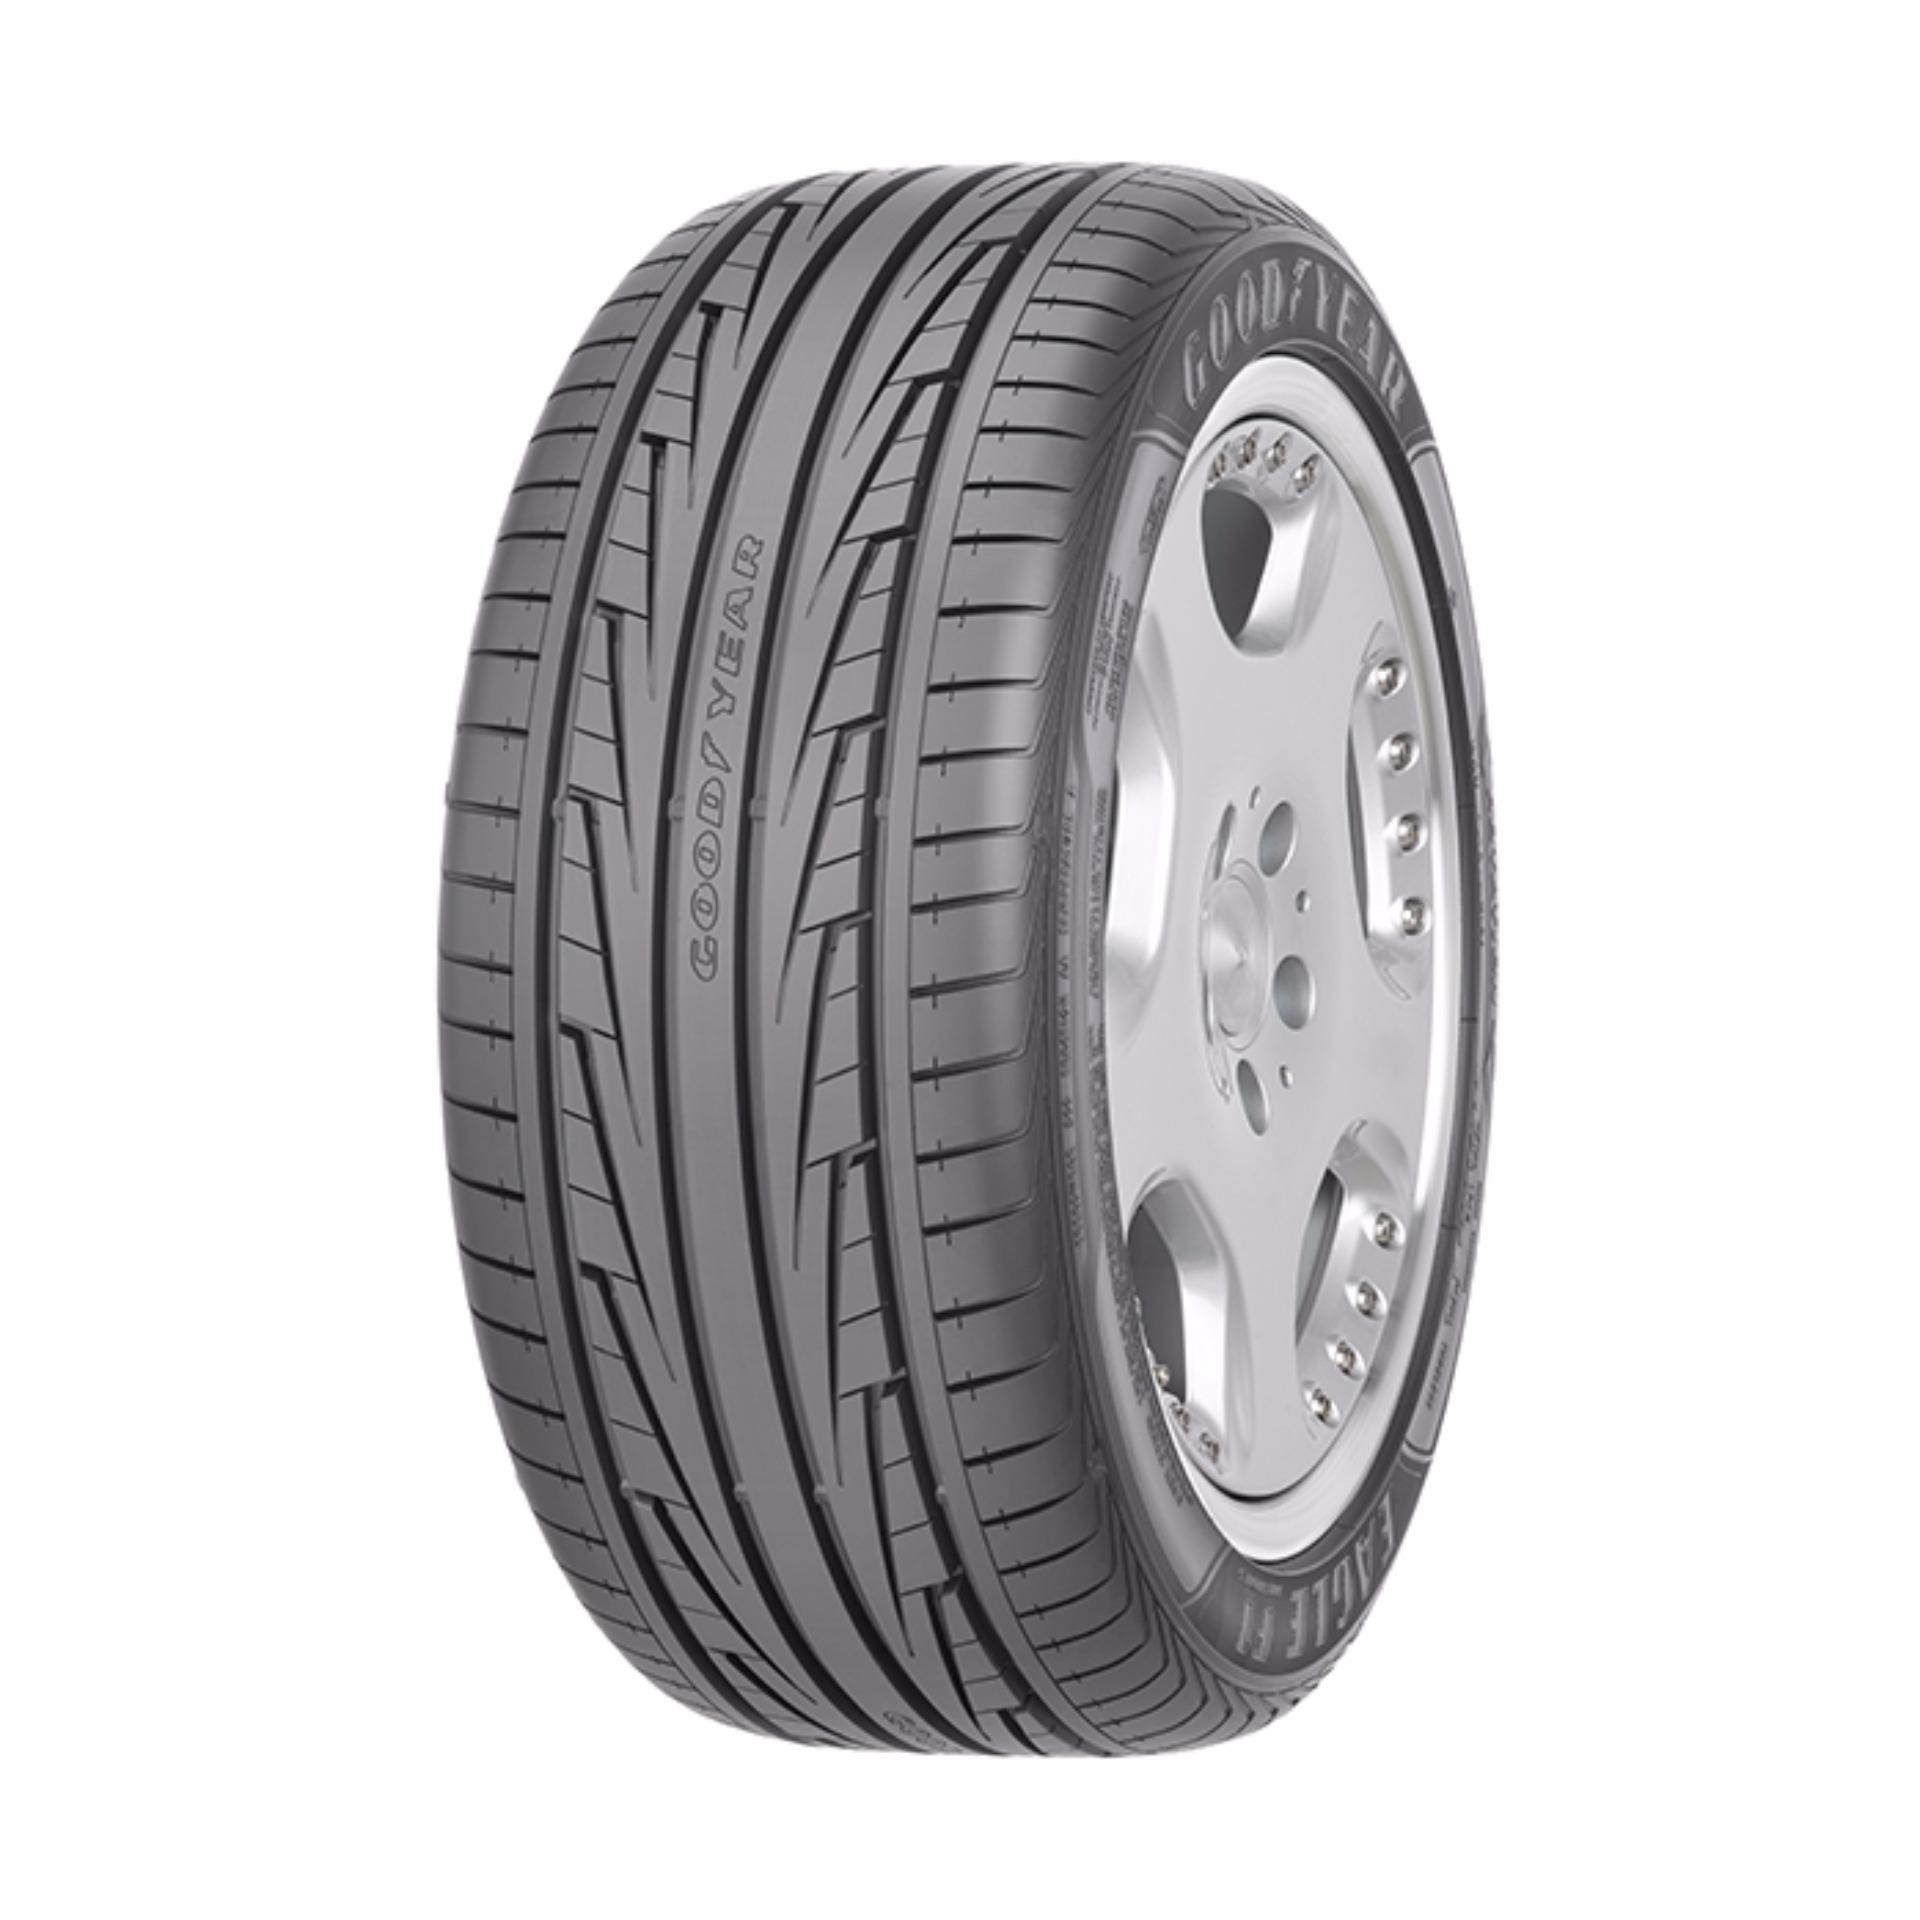 Goodyear 245/35 R19 Eagle f1 directional 5 - TH 2012